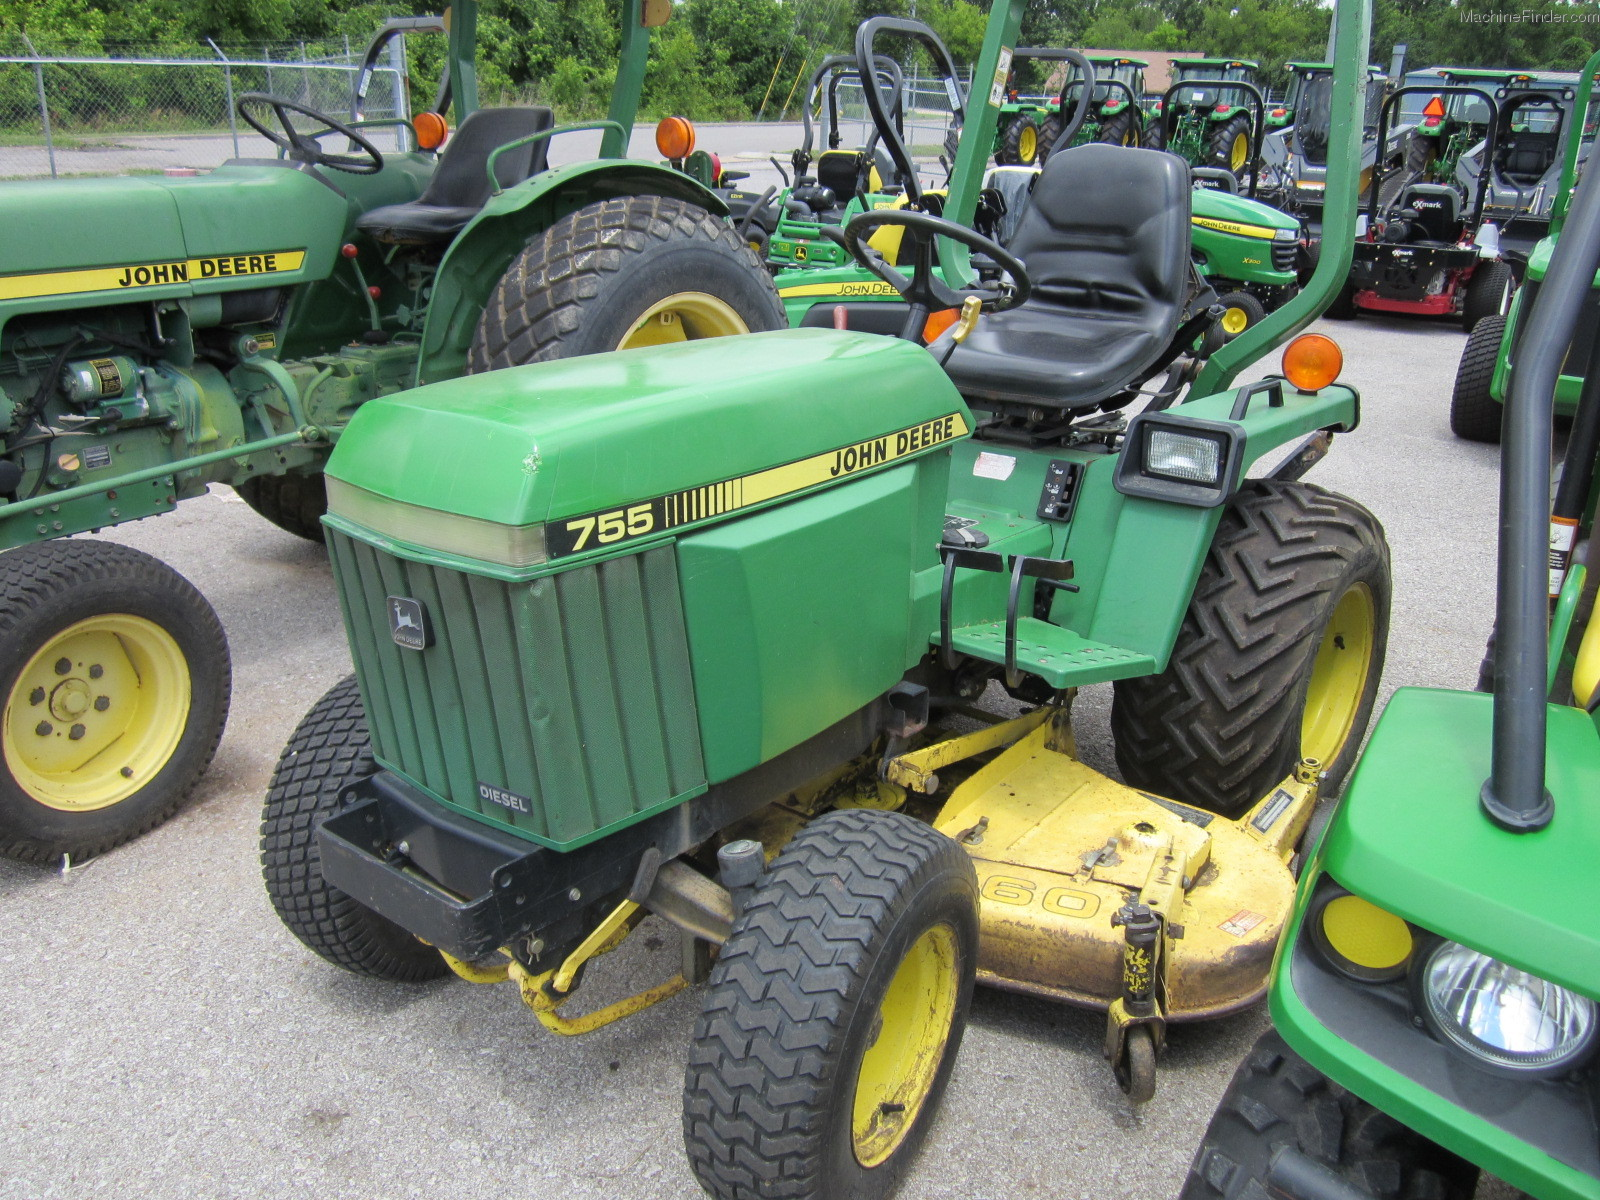 1992 john deere 755 tractors compact 1 40hp john. Black Bedroom Furniture Sets. Home Design Ideas